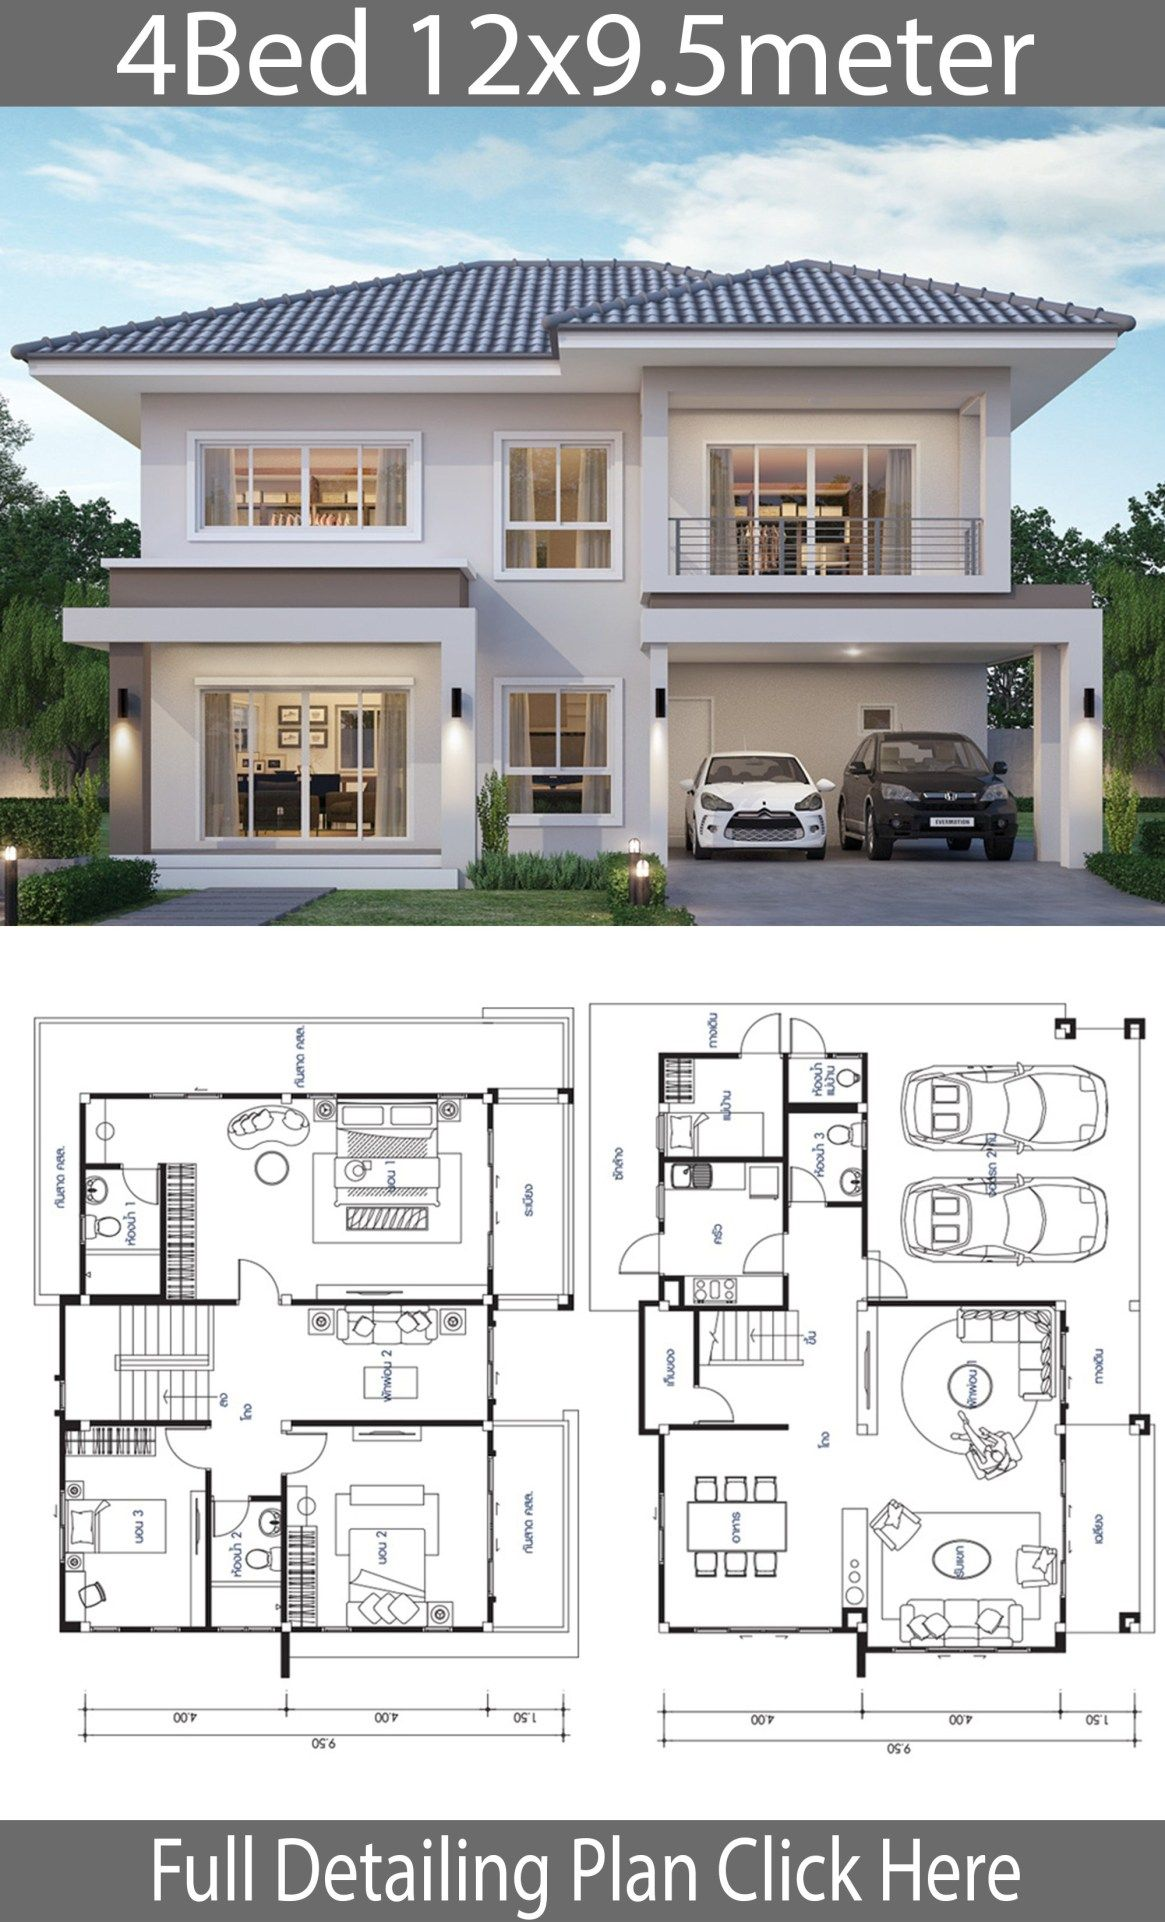 House Design Plan 12x9 5m With 4 Bedrooms Home Design With Plansearch 2 Storey House Design Architectural House Plans Sims House Plans